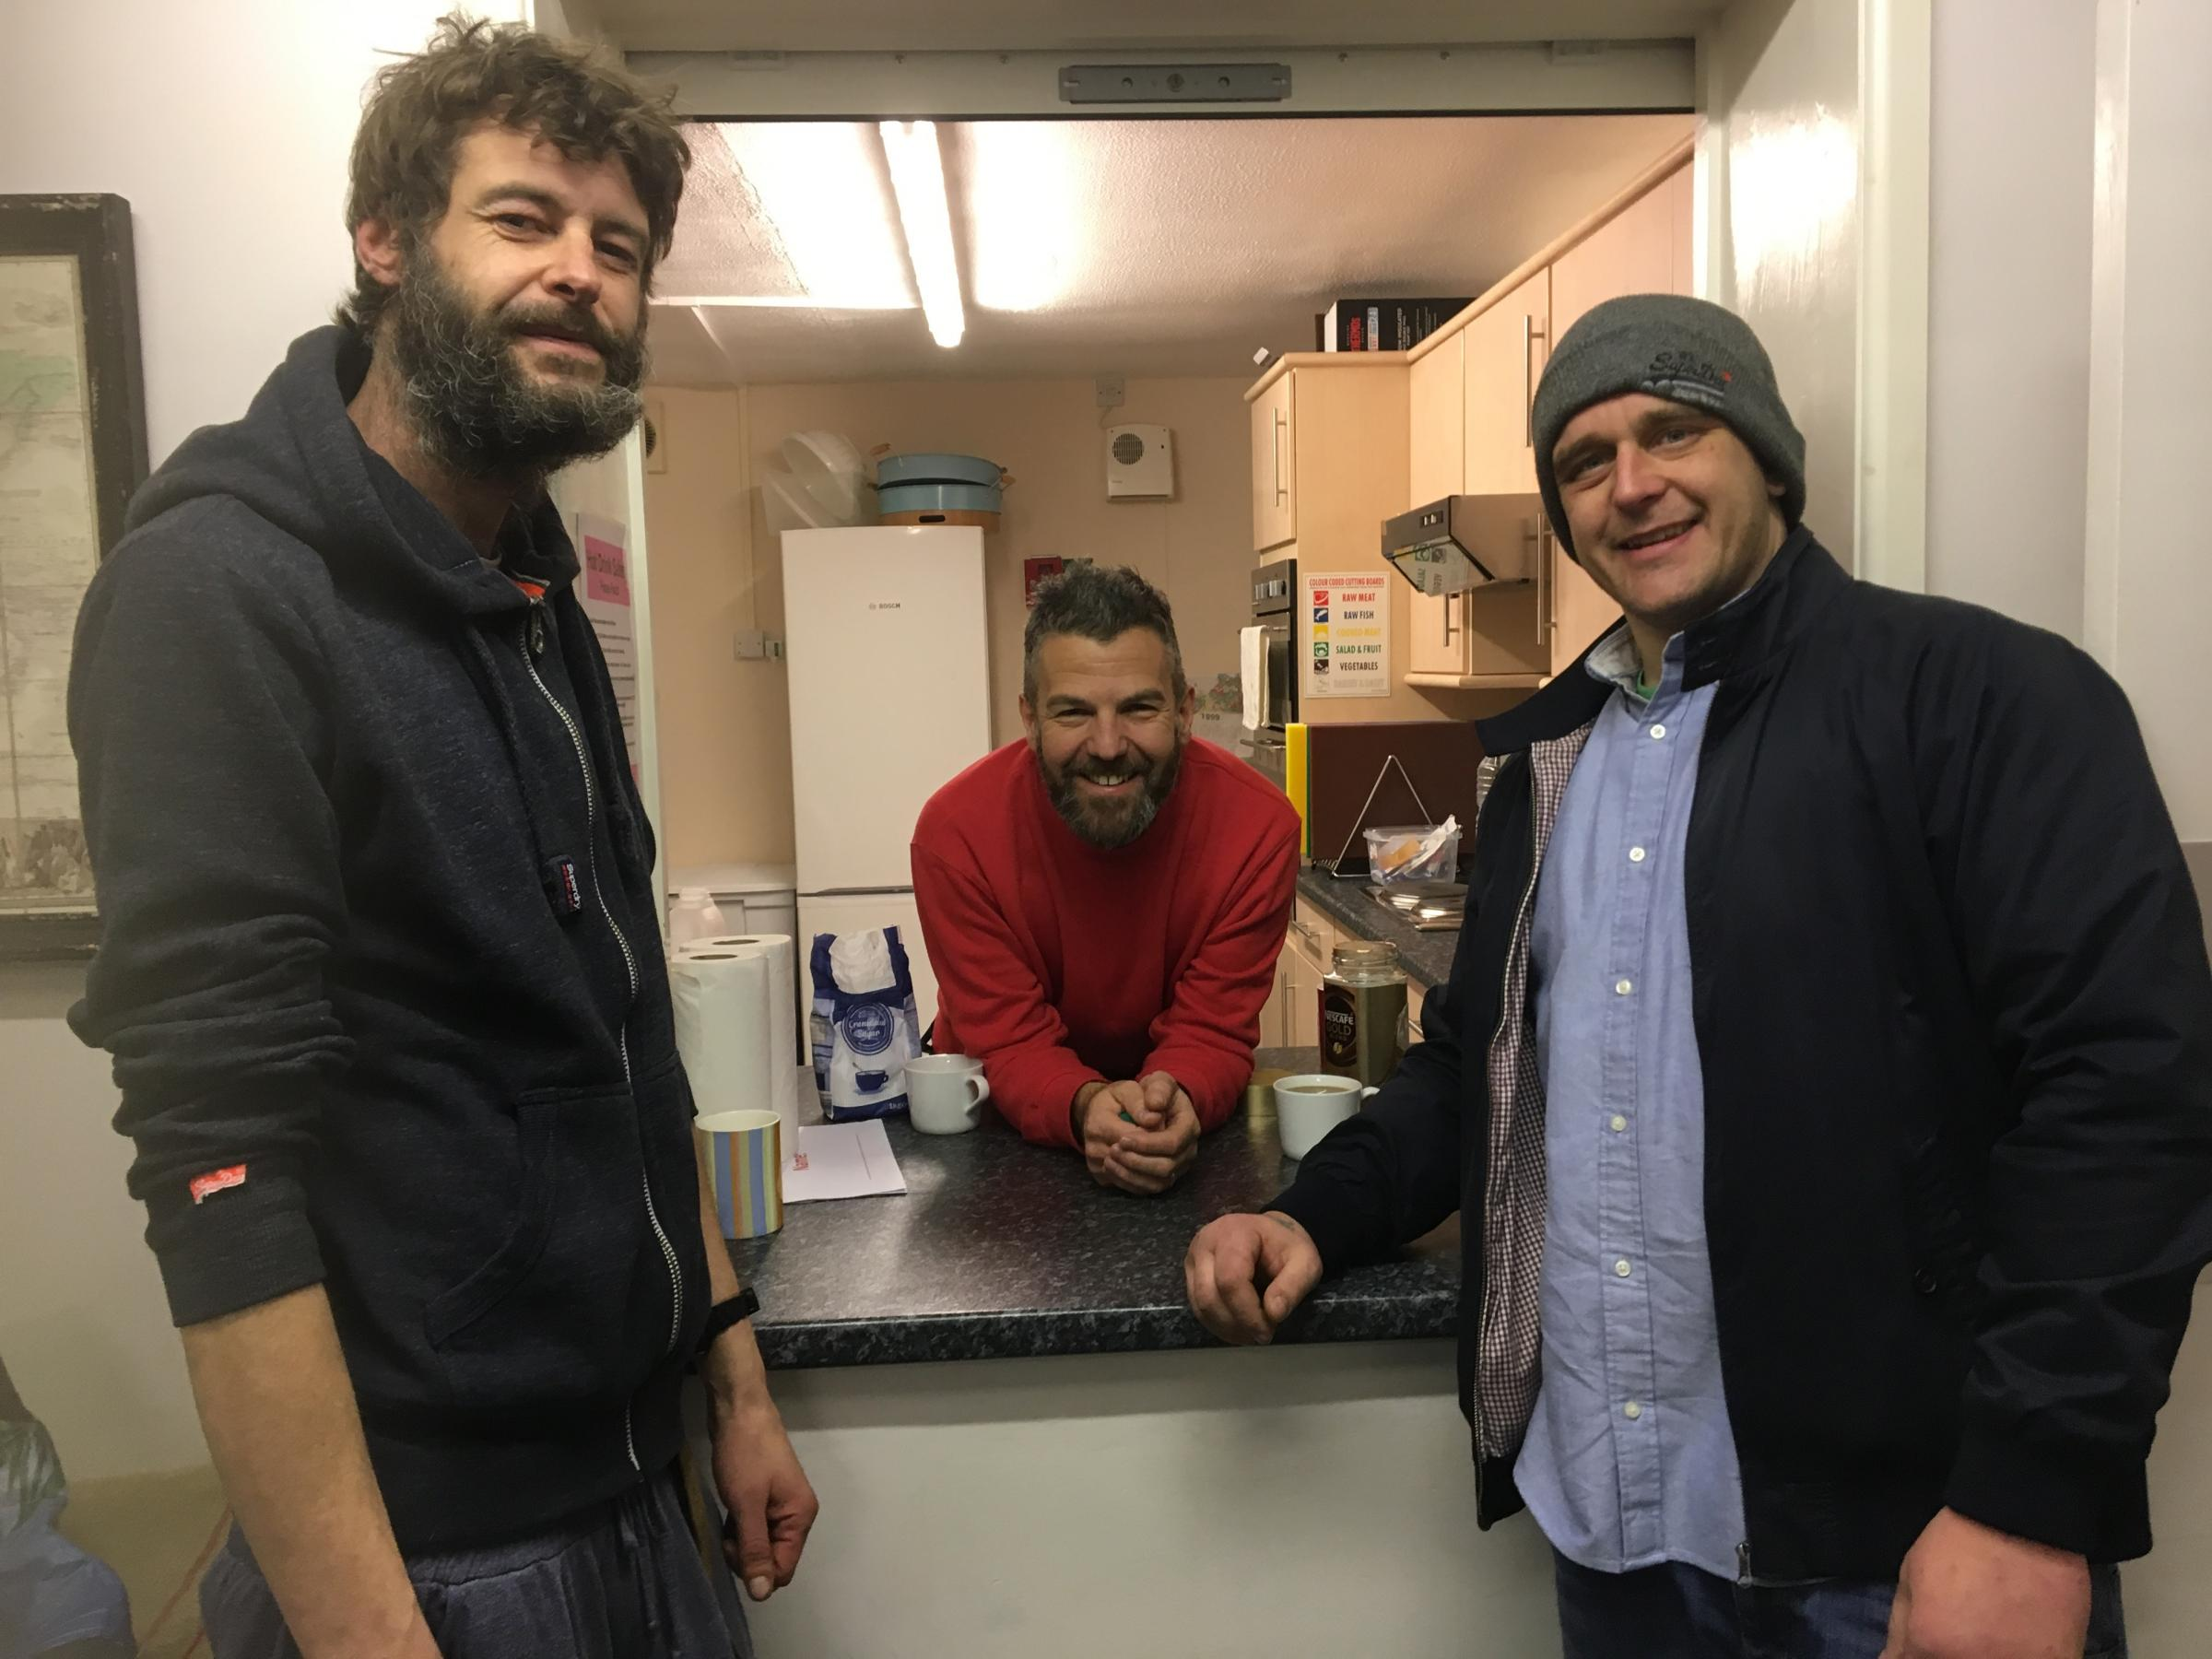 ROOM AT THE CHURCH: Rough sleepers Simon and Dan welcomed by pastor Sim Cracknell